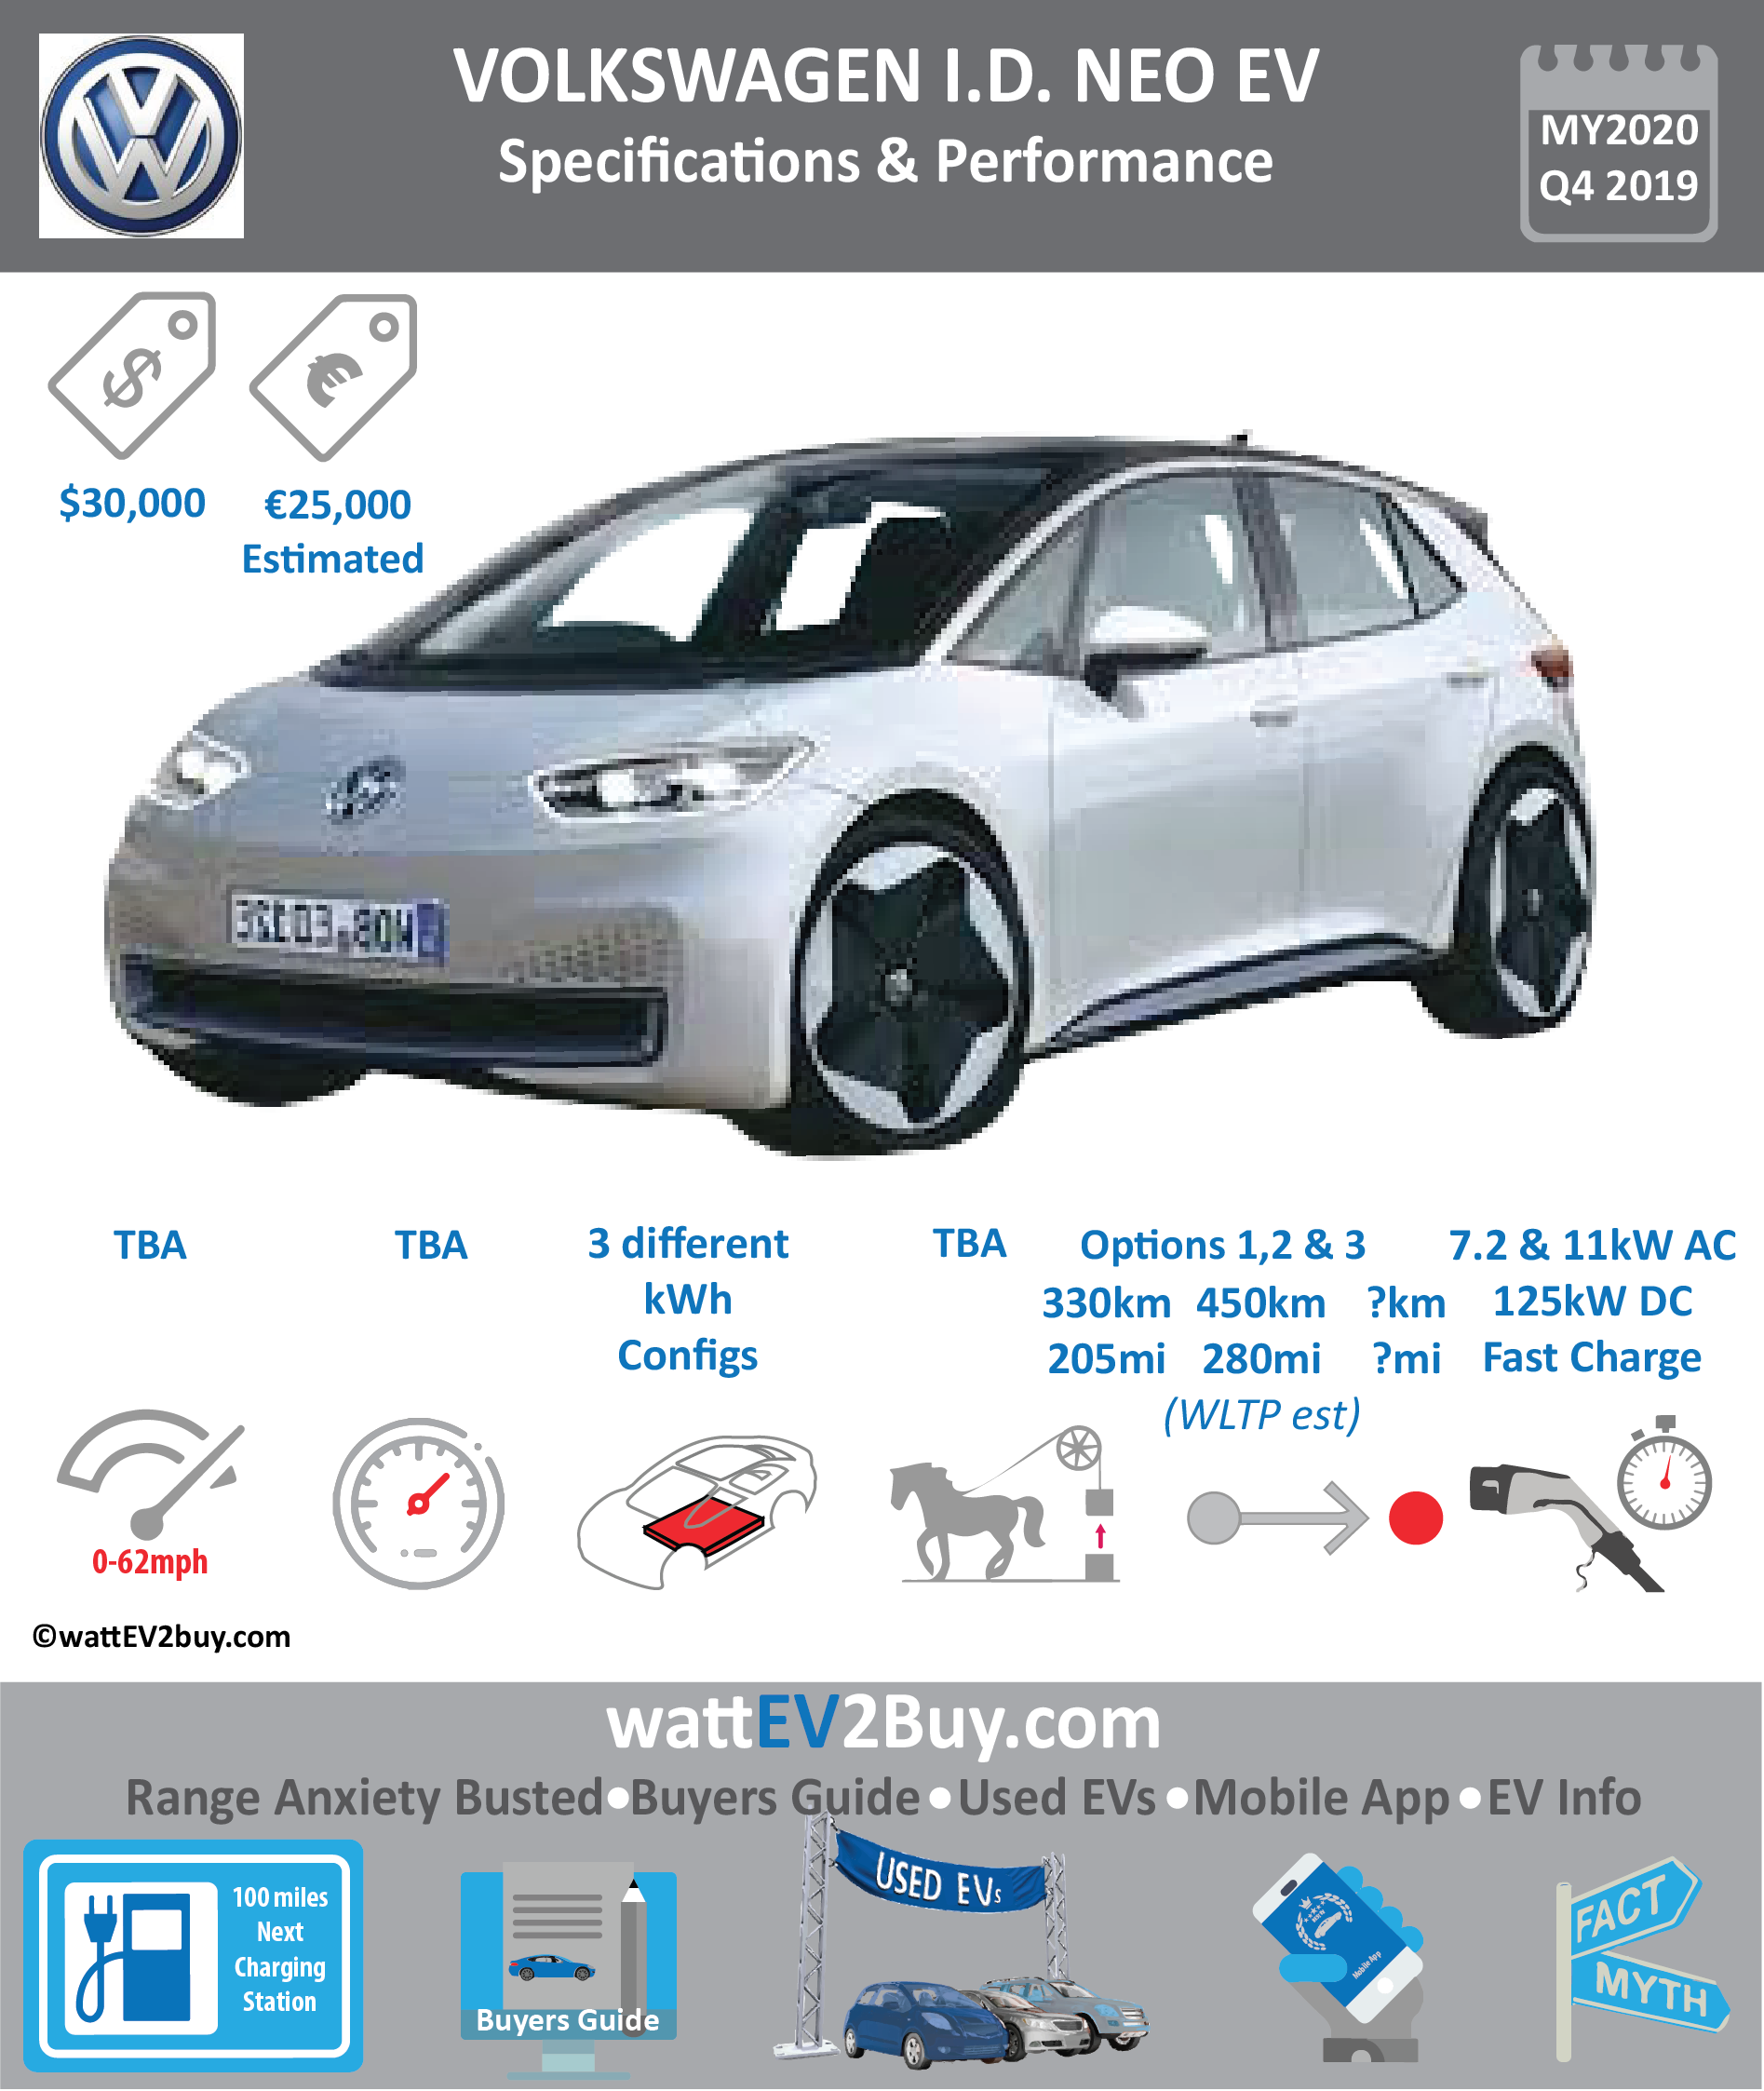 "VW ID NEO EV Specs wattev2Buy.com 2020 Battery Chemistry Battery Capacity kWh Battery Nominal rating kWh Voltage V Amps Ah Cells Modules Efficiency Weight (kg) Cell Type SOC Cooling Cycles Battery Type Depth of Discharge (DOD) Energy Density Wh/kg Battery Manufacturer Battery Warranty - years Battery Warranty - km Battery Warranty - miles Battery Electric Range - at constant 38mph Battery Electric Range - at constant 60km/h Battery Electric Range - at constant 25mph Battery Electric Range - at constant 40km/h Battery Electric Range - JC08 Mi Battery Electric Range - JC08 km Battery Electric Range - WLTP Mi 250 Battery Electric Range - WLTP km 400 Battery Electric Range - NEDC Mi 250 Battery Electric Range - NEDC km 400 Battery Electric Range - CCM Mi Battery Electric Range - CCM km Battery Electric Range - EPA Mi Battery Electric Range - EPA km Electric Top Speed - mph Electric Top Speed - km/h Acceleration 0 - 100km/h sec Acceleration 0 - 50km/h sec Acceleration 0 - 125km/h sec Acceleration 0 - 125mph sec Acceleration 0 - 188mph sec Acceleration 0 - 62mph sec Acceleration 0 - 60mph sec Acceleration 0 - 37.2mph sec Braking 100-0km/h (m) Wireless Charging Direct Current Fast Charge kW Charger Efficiency Onboard Charger kW Onboard Charger Optional kW Charging Cord - amps Charging Cord - volts LV 1 Charge kW LV 1 Charge Time (Hours) LV 2 Charge kW LV 2 Charge Time (Hours) LV 3 CCS/Combo kW LV 3 Charge Time (min to 70%) LV 3 Charge Time (min to 80%) LV 3 Charge Time (mi) LV 3 Charge Time (km) Battery Swap (min) Supercharger Charging System kW Charger Output Charge Type Charge Connector Braking Power Outlet kW Power Outlet Amps MPGe Combined - miles MPGe Combined - km MPGe City - miles MPGe City - km MPGe Highway - miles MPGe Highway - km Max Power - hp (Electric Max) Max Power - kW (Electric Max) Max Torque - lb.ft (Electric Max) Max Torque - N.m (Electric Max) Drivetrain Generator Motor Type Electric Motor Manufacturer Electric Motor Output kW Electric Motor Output hp Transmission Electric Motor - Rear Max Power - hp (Rear) Max Power - kW (Rear) Max Torque - lb.ft (Rear) Max Torque - N.m (Rear) Electric Motor - Front Max Power - hp (Front) Max Power - kW (Front) Max Torque - lb.ft (Front) Max Torque - N.m (Front) Energy Consumption kWh/100km Energy Consumption kWh/100miles ""EU g CO2/km "" Deposit GB Battery Lease per month EU Battery Lease per month China Battery Lease per month MSRP (expected) EU MSRP (before incentives & destination) € 25,000.00 NOK MSRP (before incentives & destination) GB MSRP (before incentives & destination) US MSRP (before incentives & destination) $30,000.00 JAP MSRP (before incentives & destination) CHINA MSRP (before incentives & destination) Local Currency MSRP MSRP after incentives Vehicle Trims Doors Seating Dimensions Luggage (L) Luggage Max (L) GVWR (kg) GVWR (lbs) Curb Weight (kg) Curb Weight (lbs) Payload Capacity (kg) Payload Capacity (lbs) Towing Capacity (lbs) Max Load Height (m) Ground Clearance (inc) Ground Clearance (mm) Lenght (mm) 0 Width (mm) 0 Height (mm) 0 Wheelbase (mm) 0 Lenght (inc) Width (inc) Height (inc) Wheelbase (inc) Other Utility Factor Sales Auto Show Unveil Paris Availability Market Segment LCD Screen (inch) Class Golf Safety Level Unveiled 1-Sep-19 Relaunch First Delivery Chassis designed Based On Extras AKA Assembly Self-Driving System SAE Autonomous Level Connectivity Unique Extras Incentives Home Charge Installation Compete Assembly Public Charging Subsidy Chinese Name Model Code Batch WEBSITE"